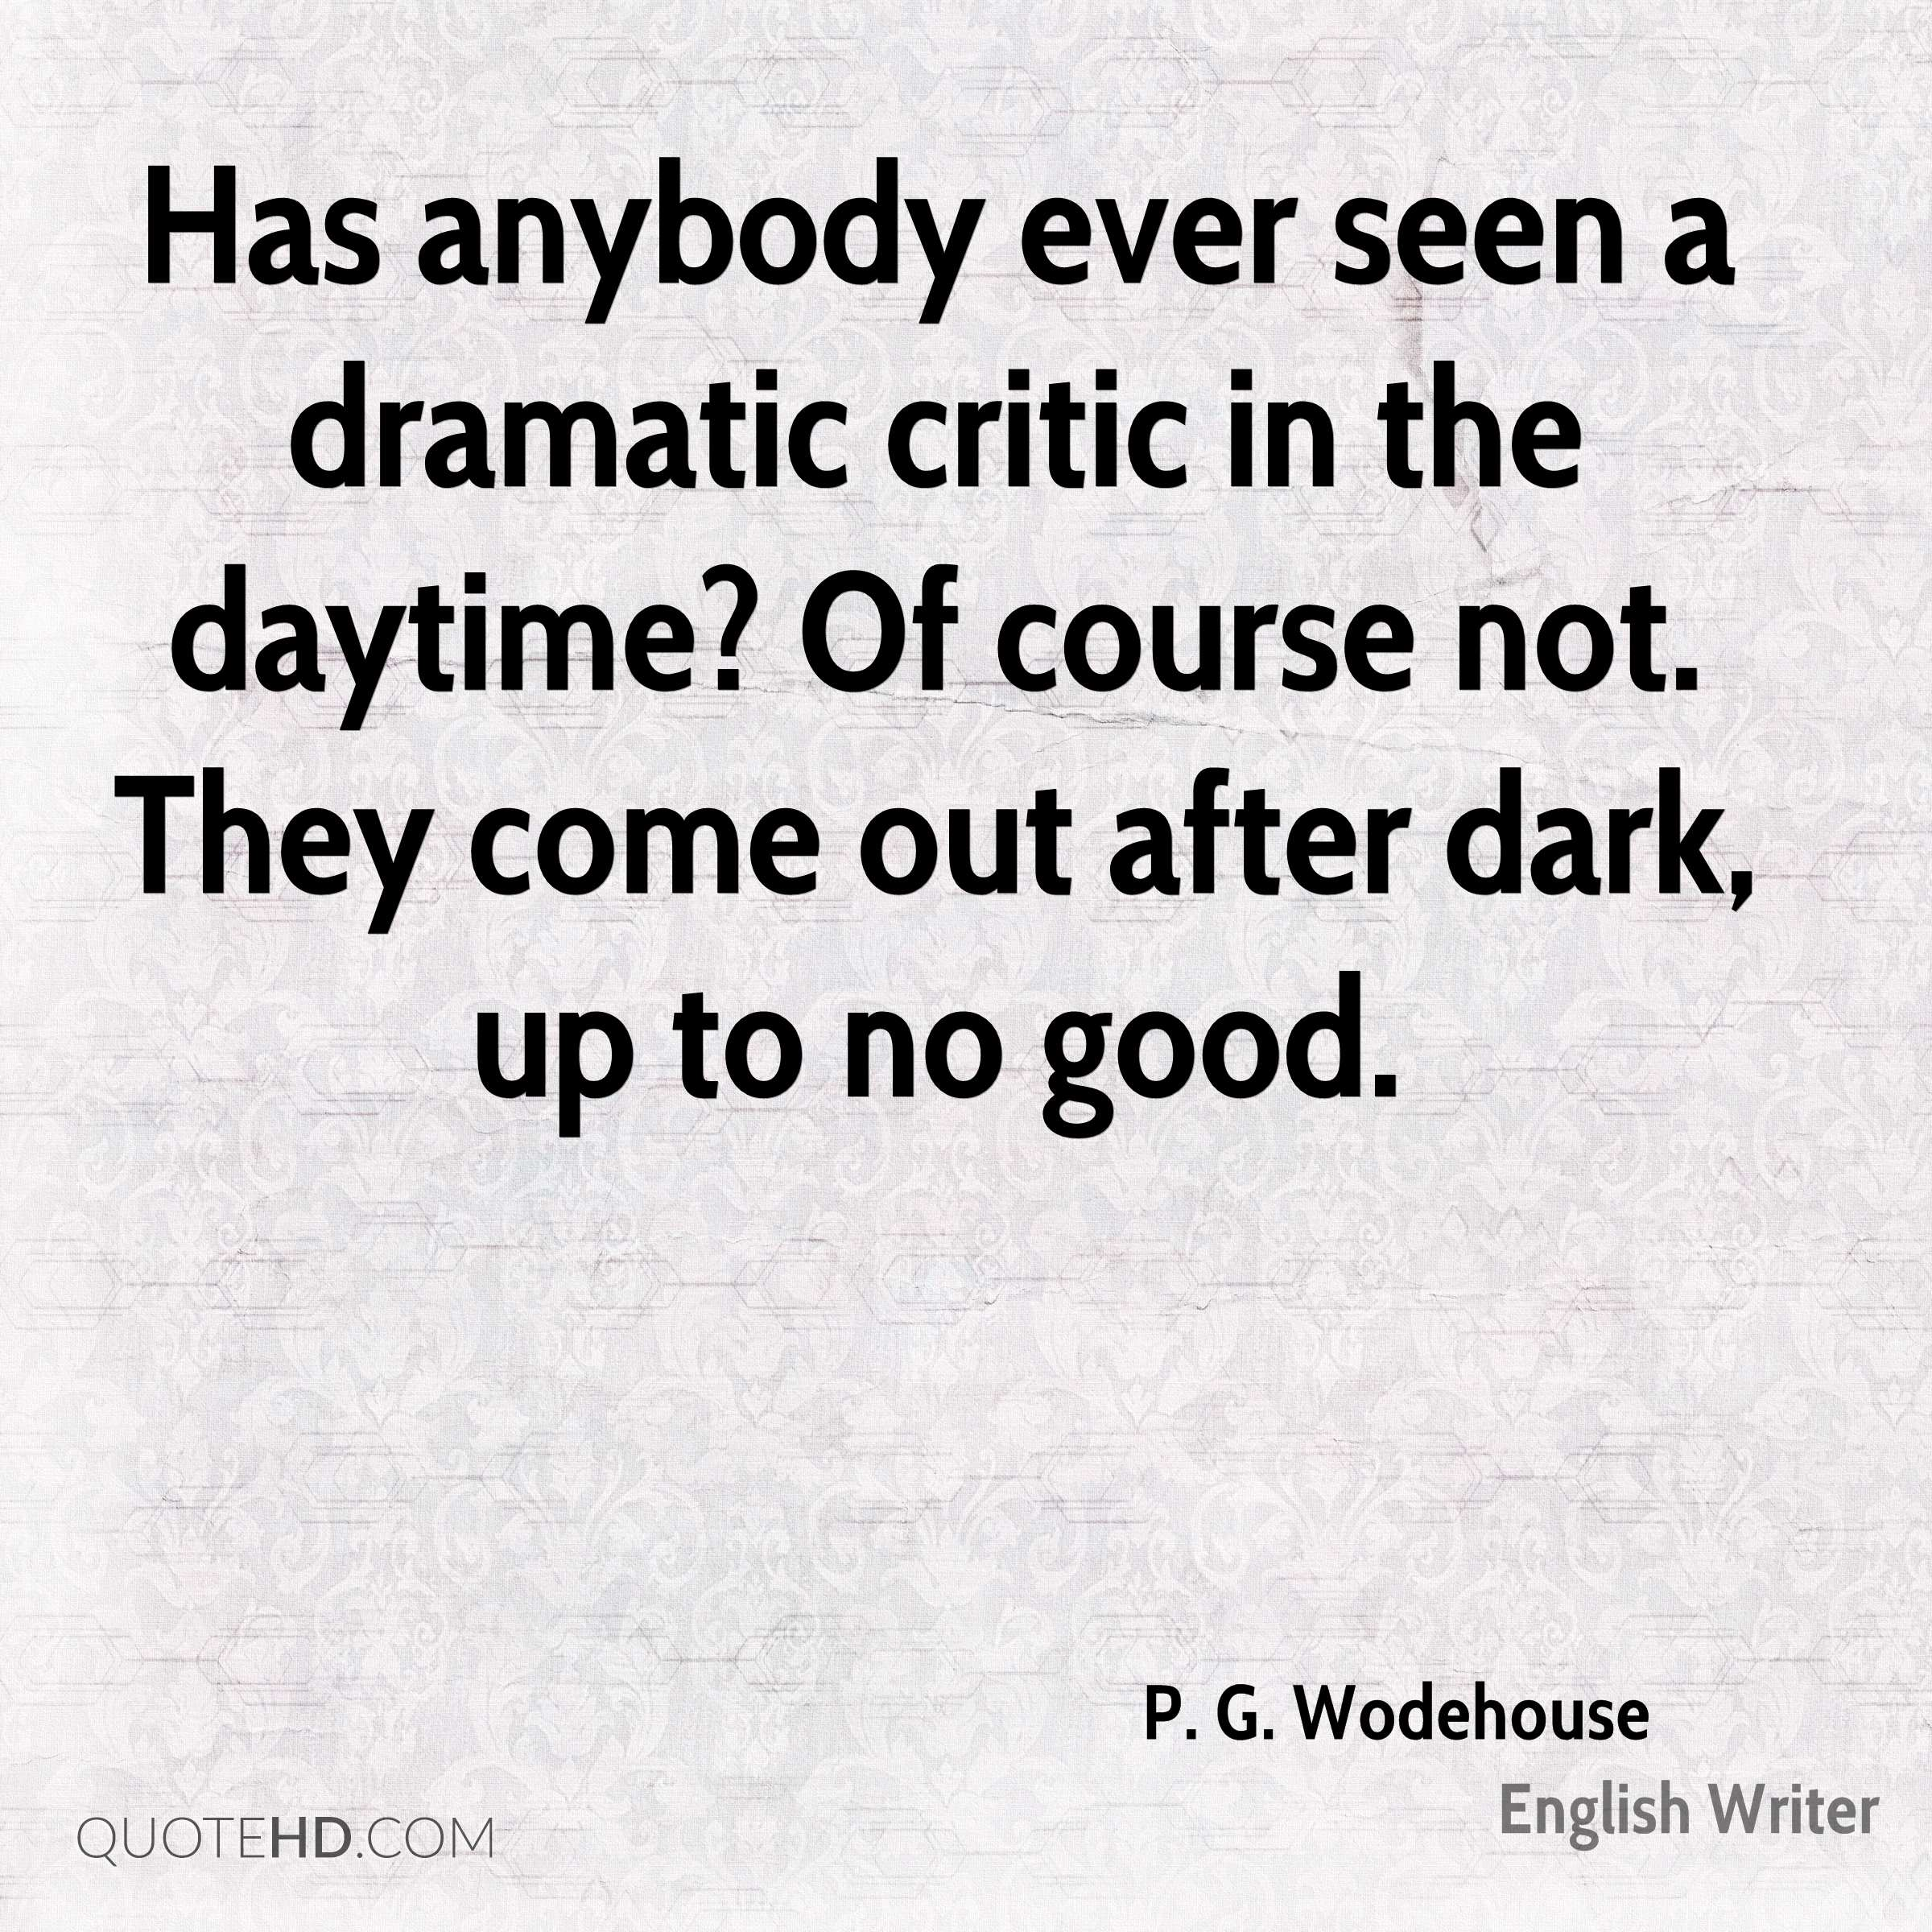 Has anybody ever seen a dramatic critic in the daytime? Of course not. They come out after dark, up to no good.